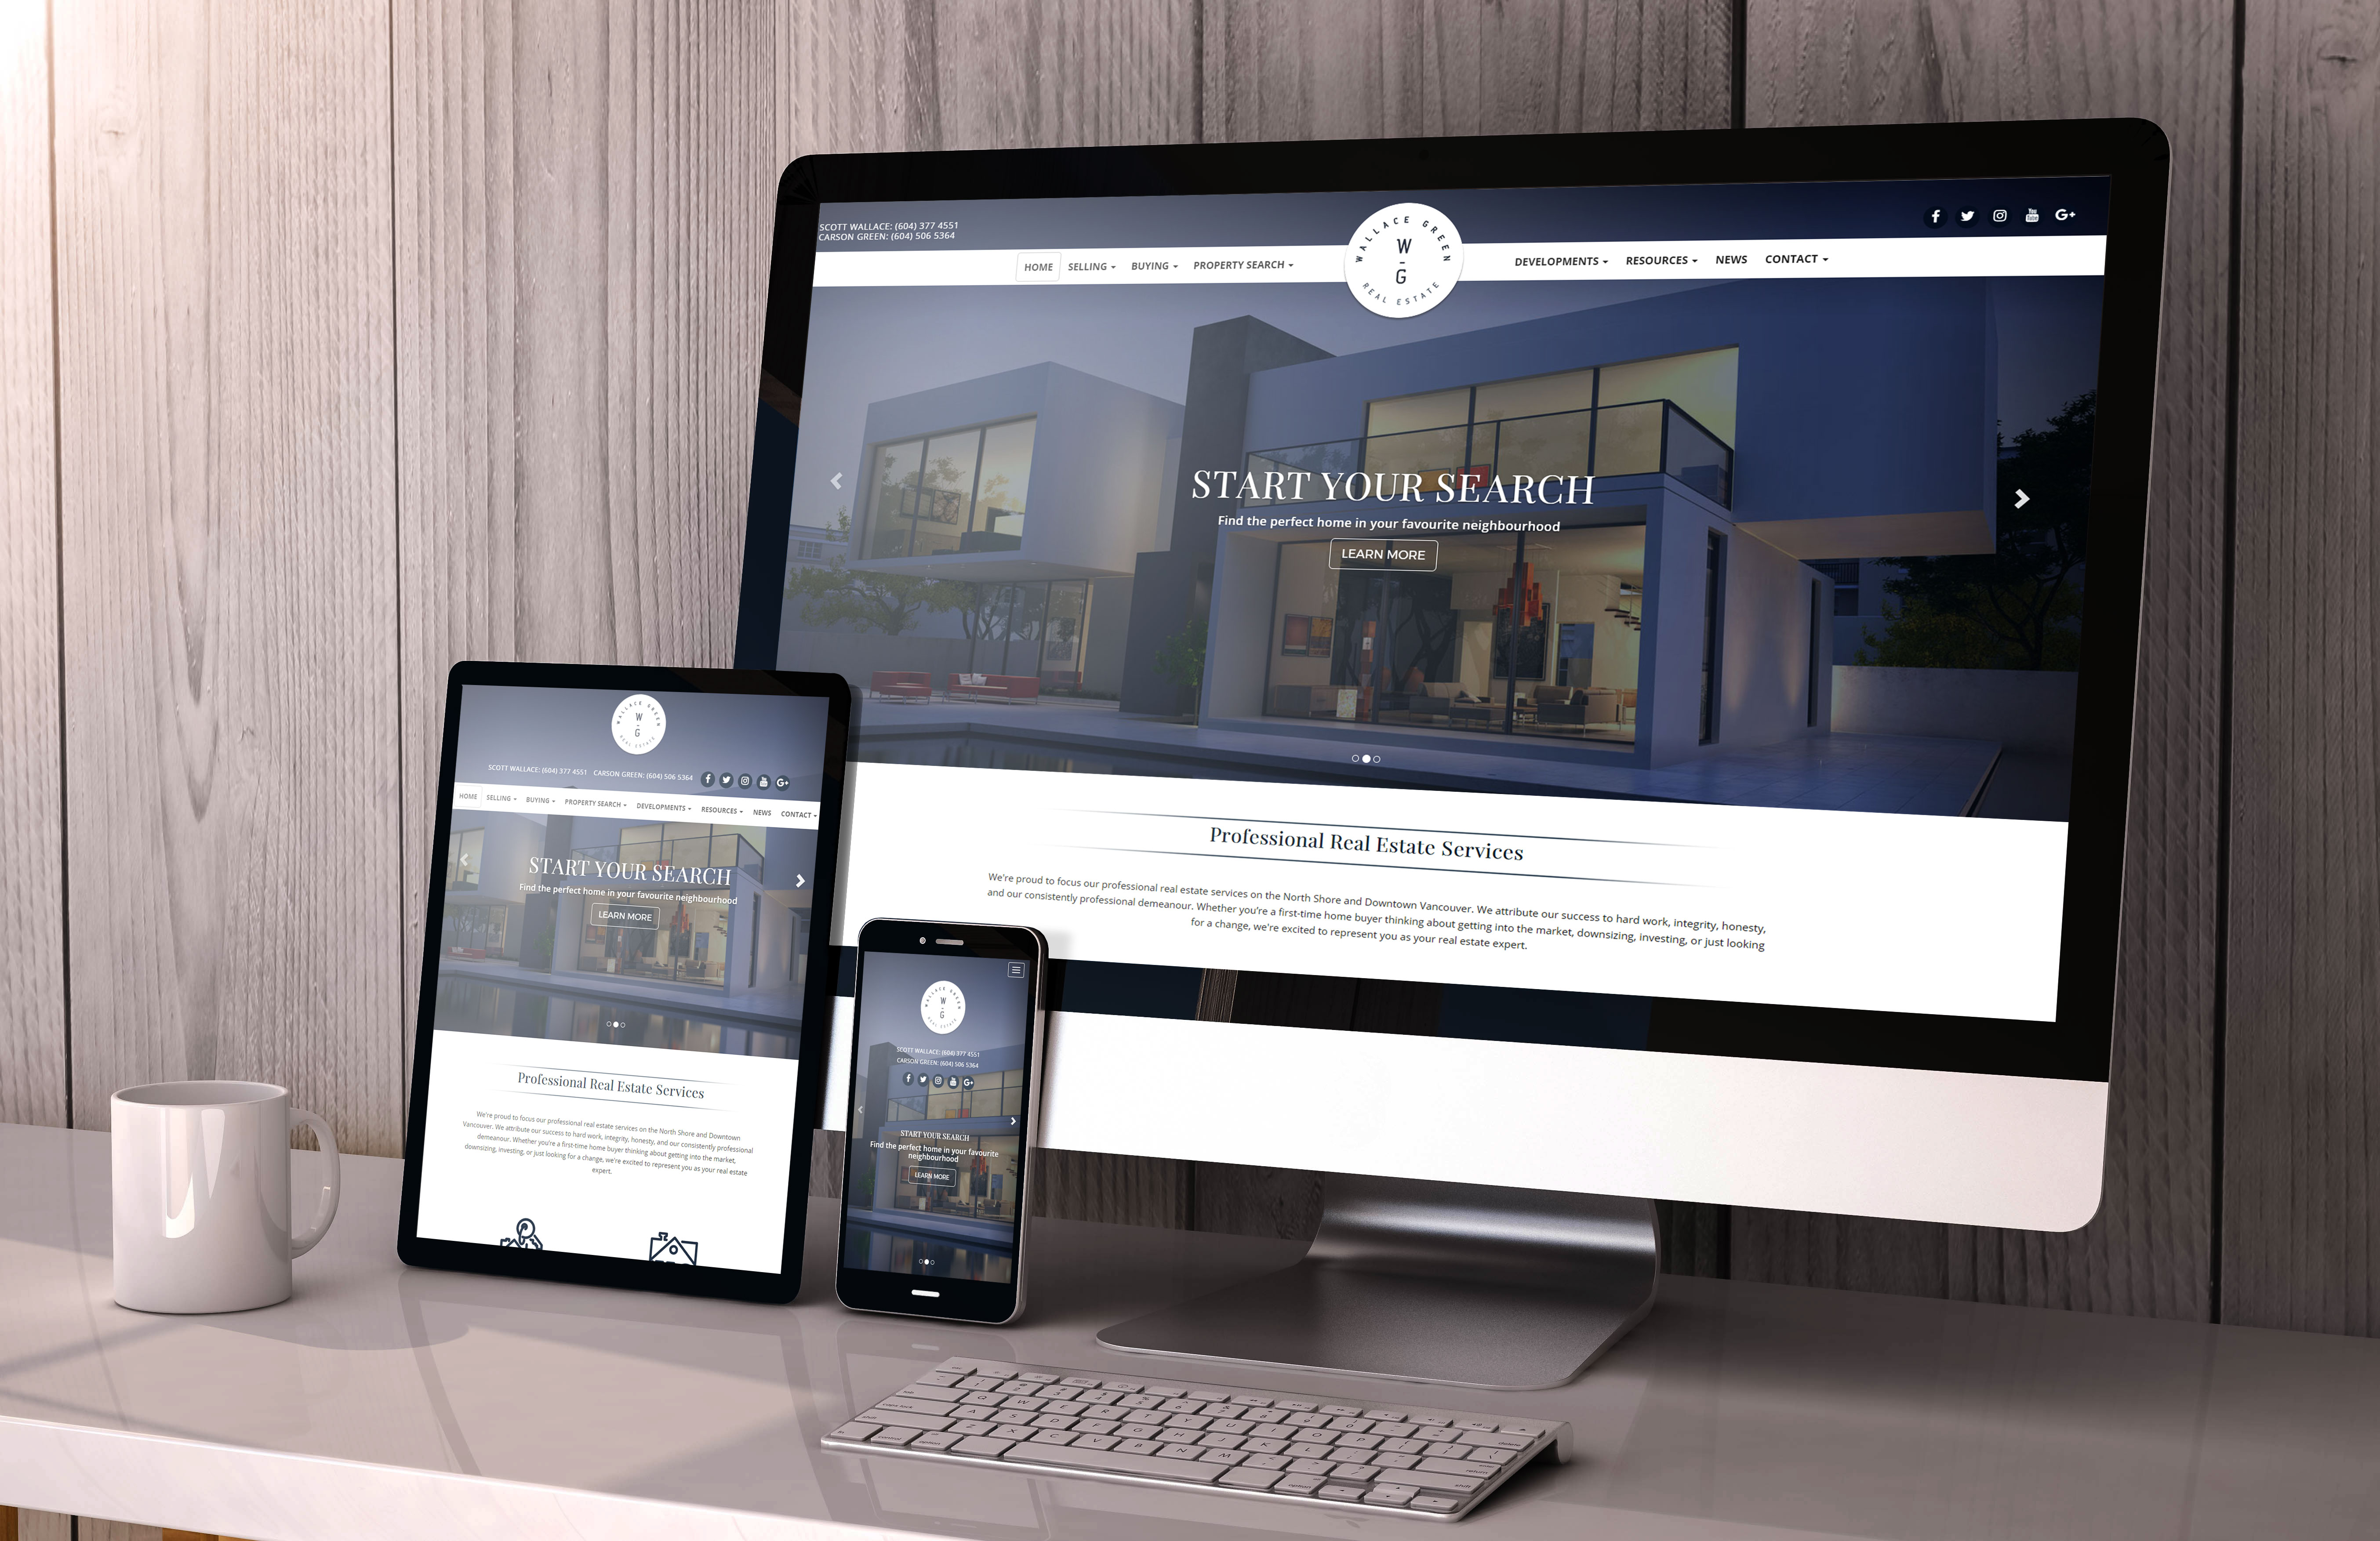 The Wallace Green real estate team site looks awesome on any device